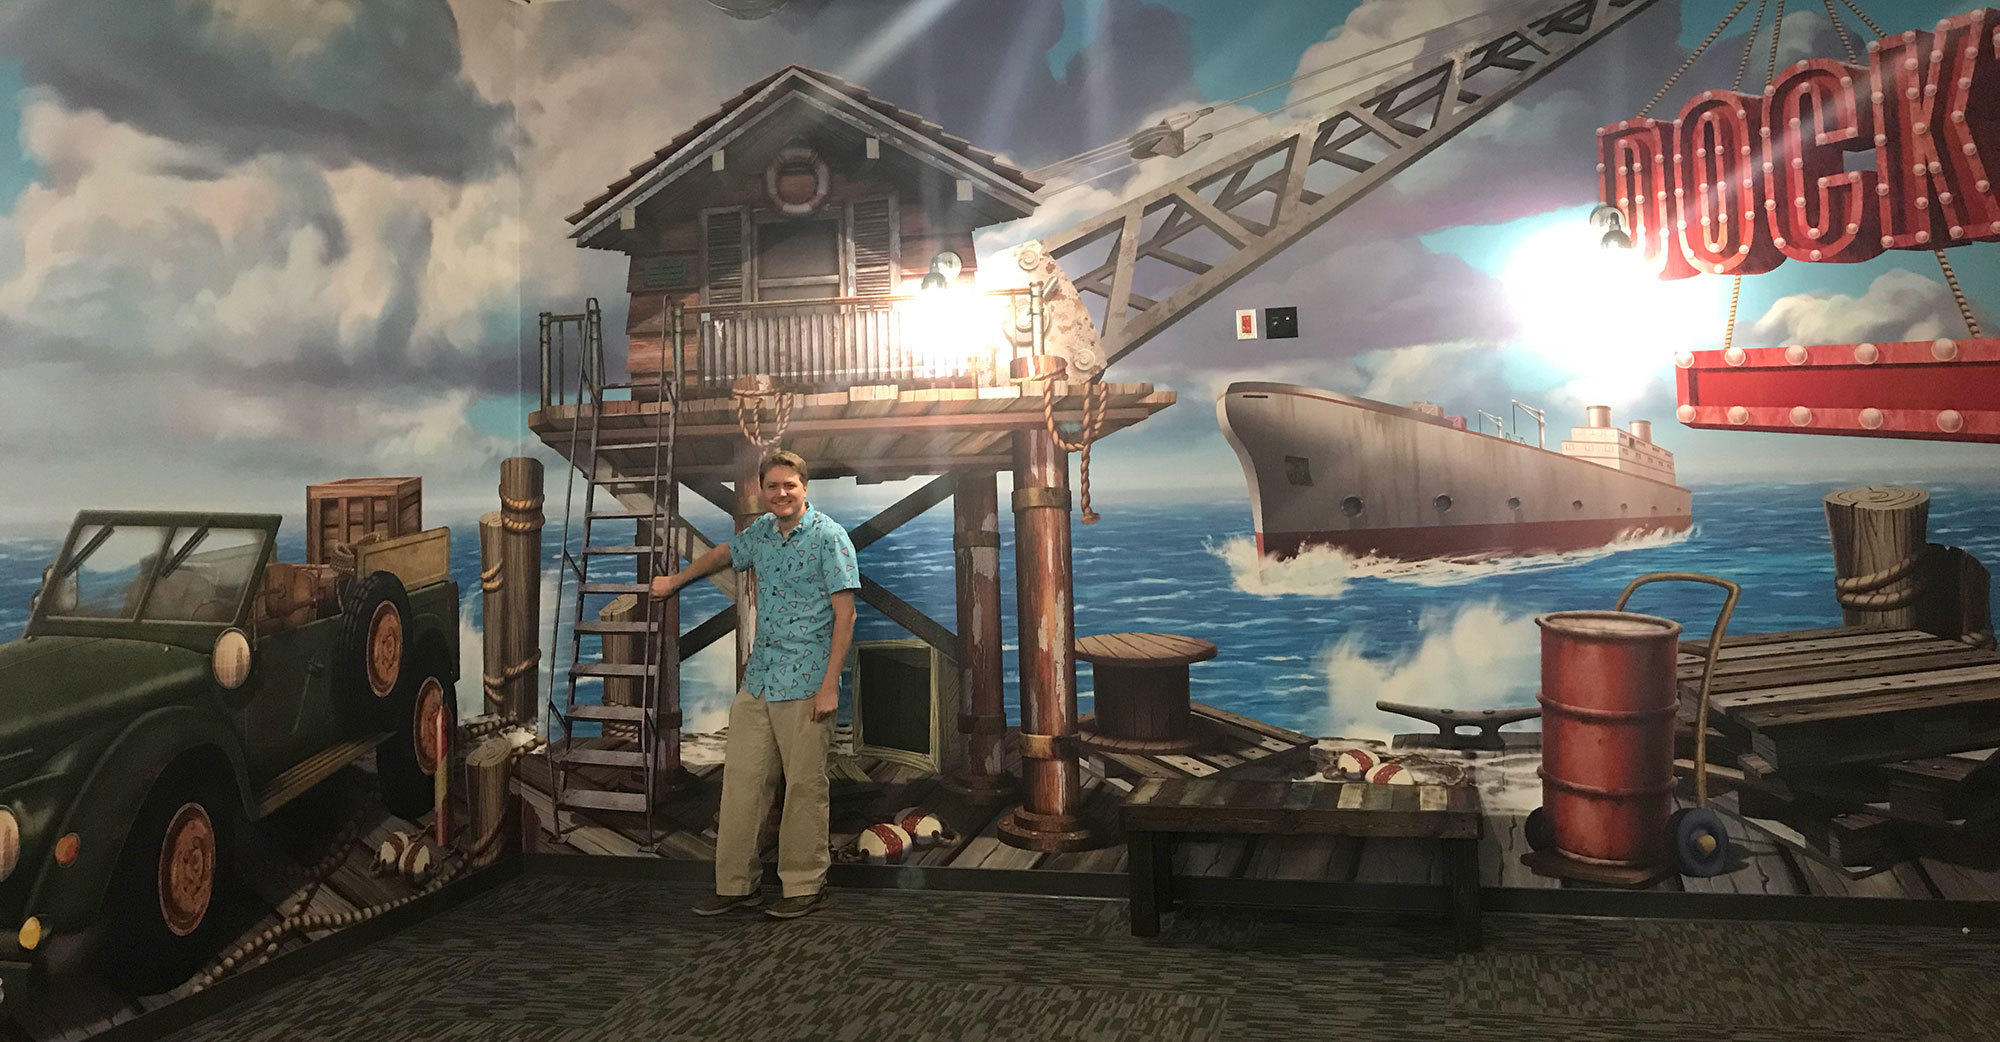 Shipping Dock Themed Wall Covering at Crosspoint Anaheim